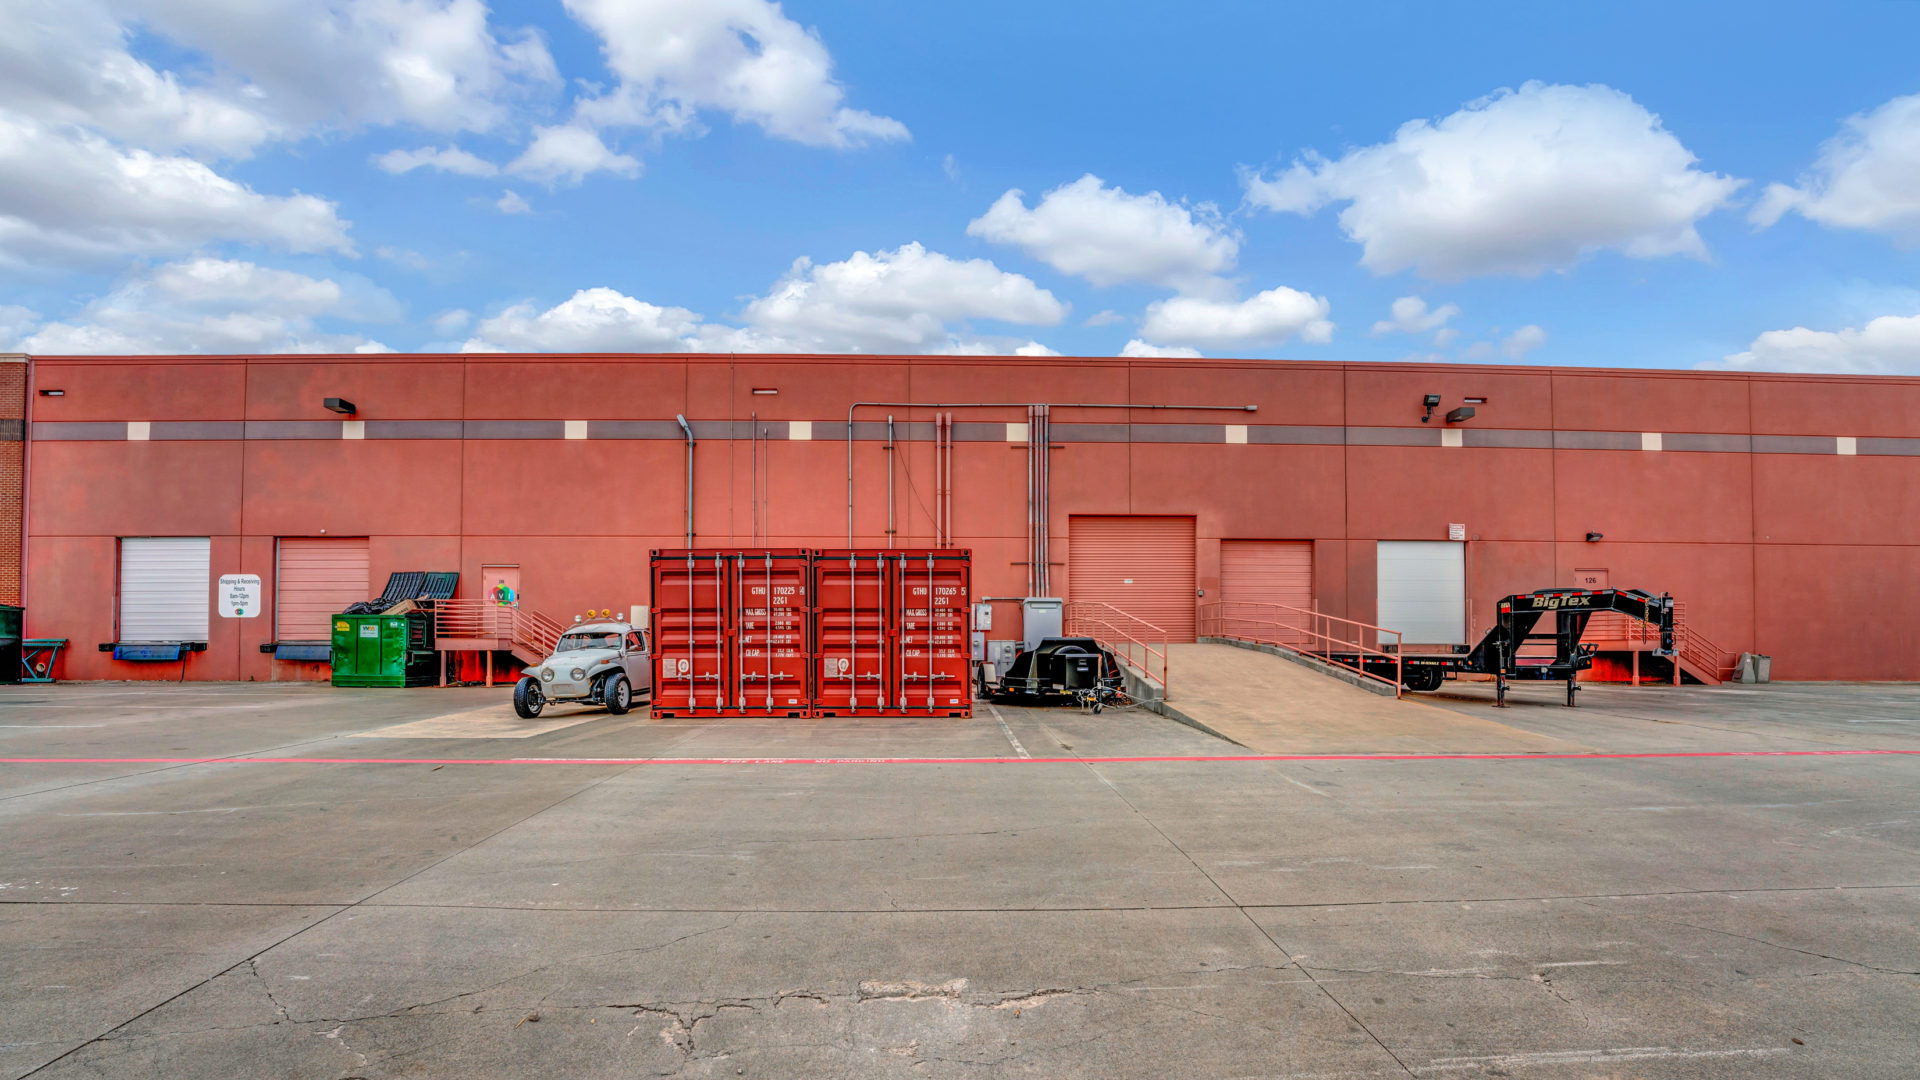 Up-close view of the backside of 4040 Royal Lane showing multiple shipping containers and loading docks